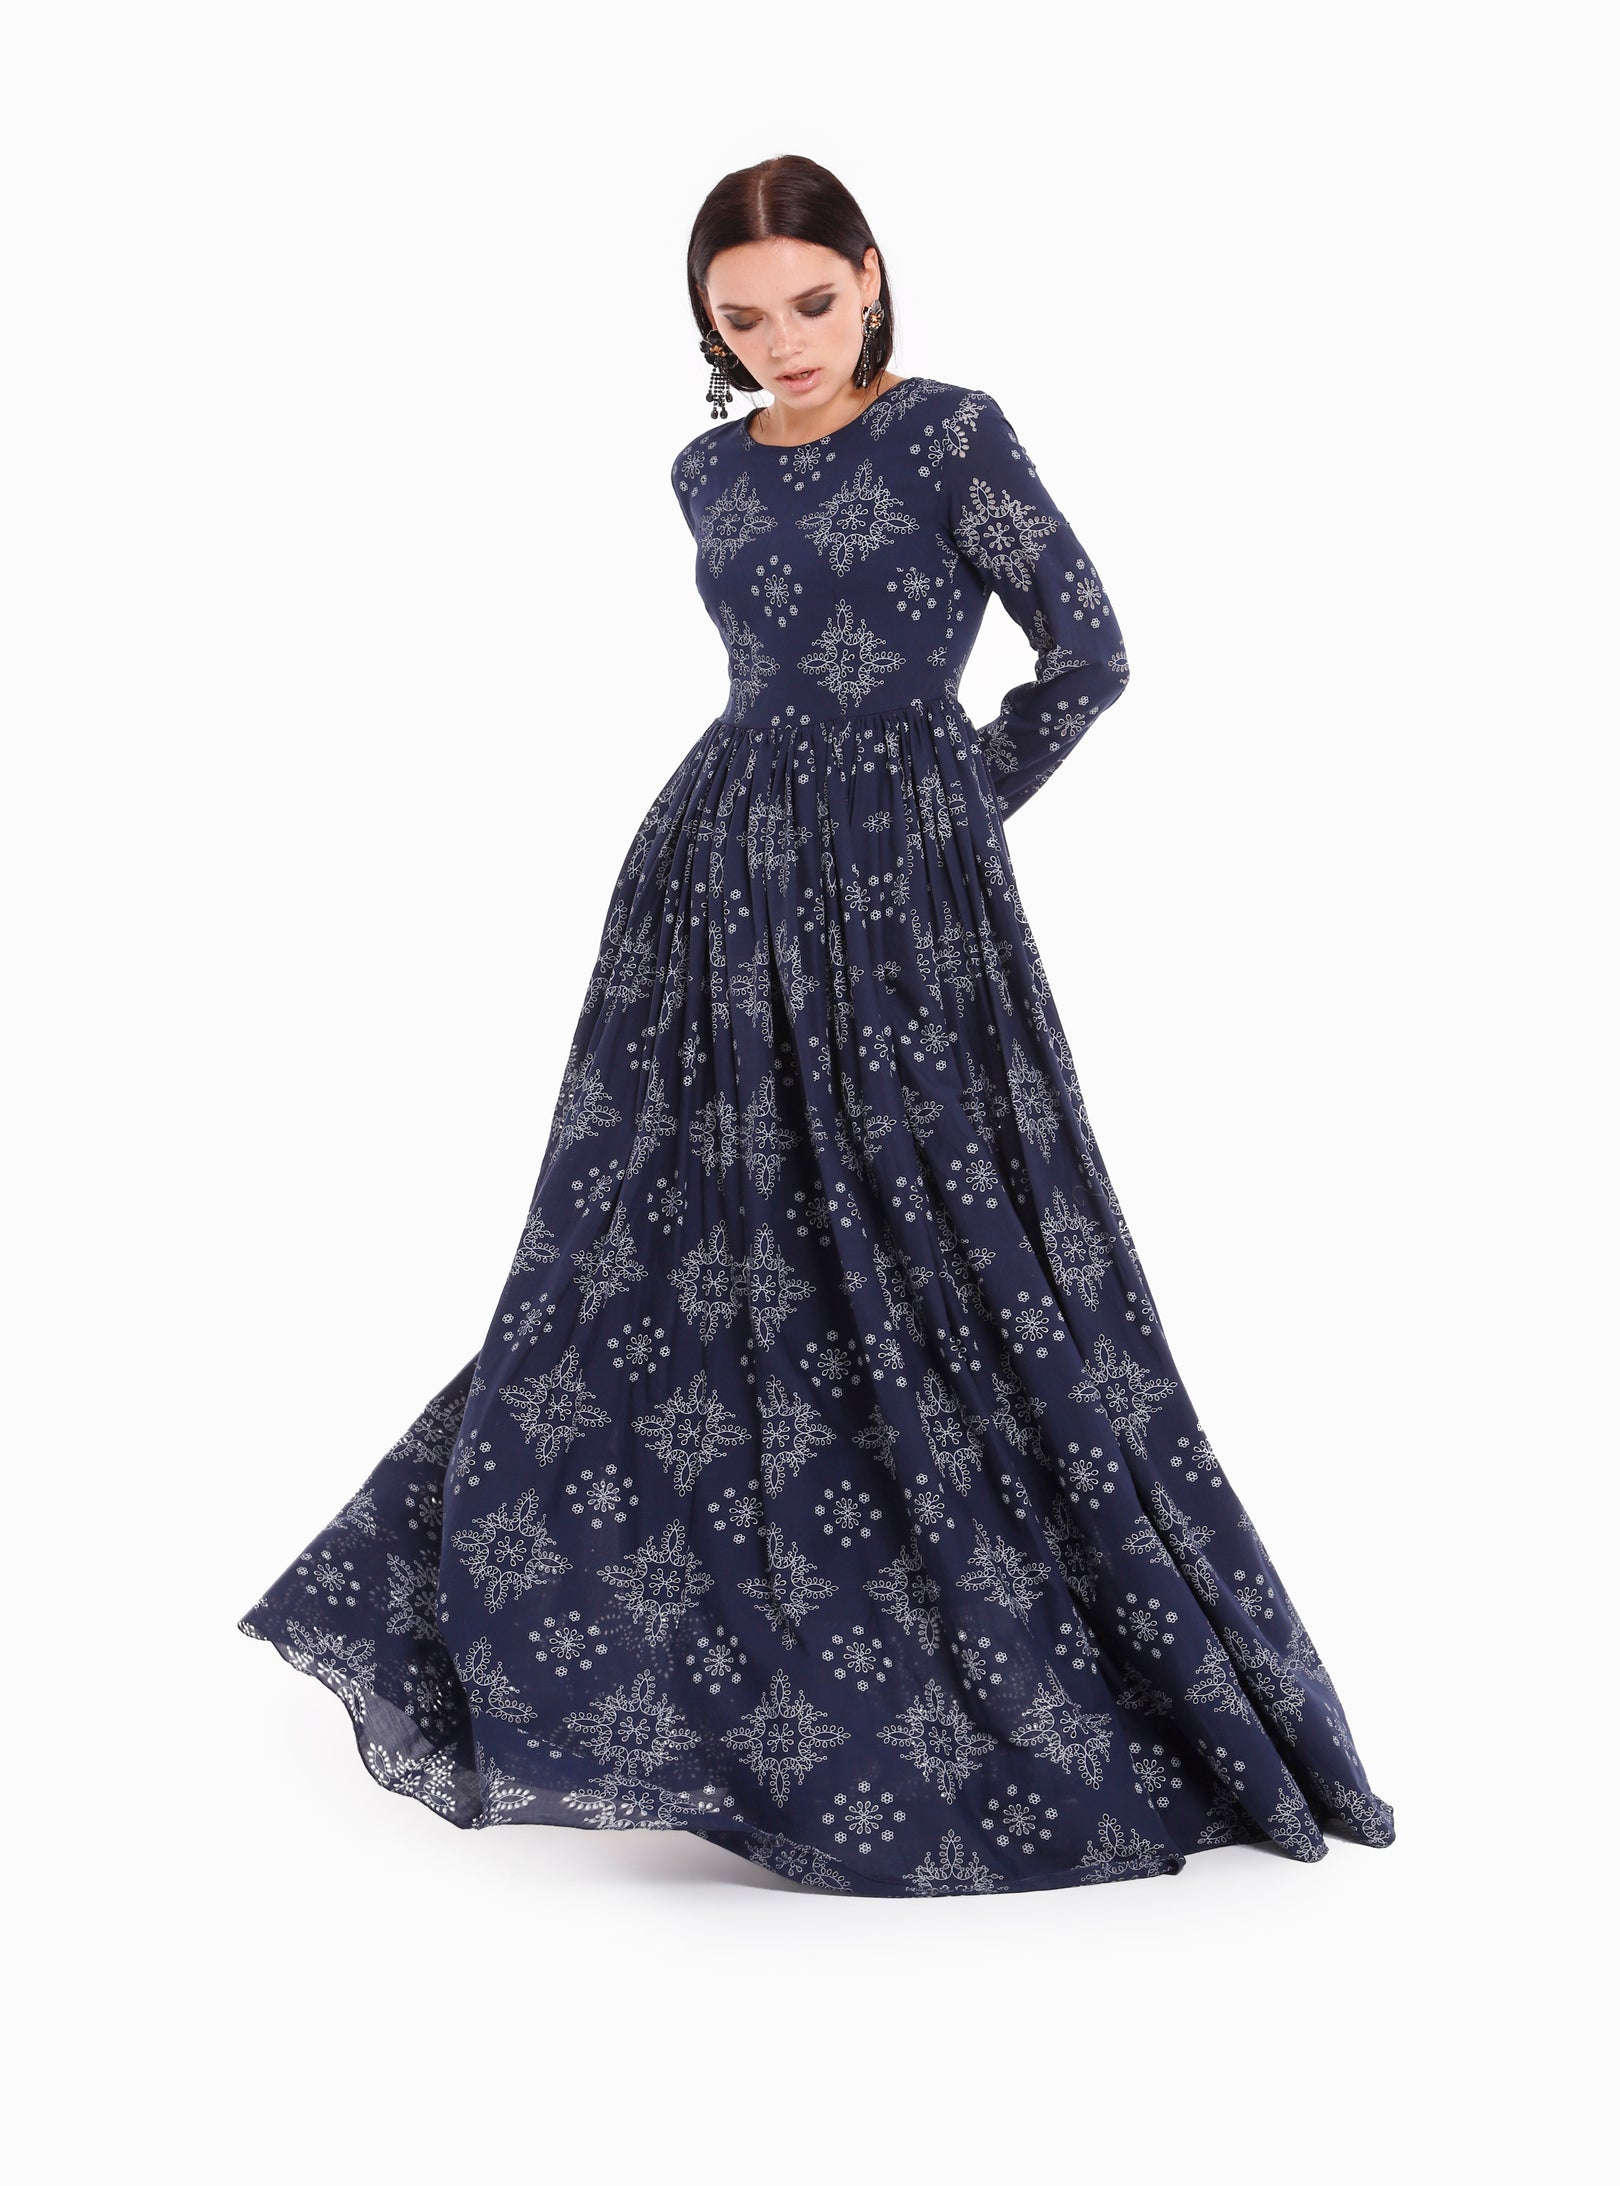 929bcdcd30aaa Ottoman Pattern Seem West Maxi Dress